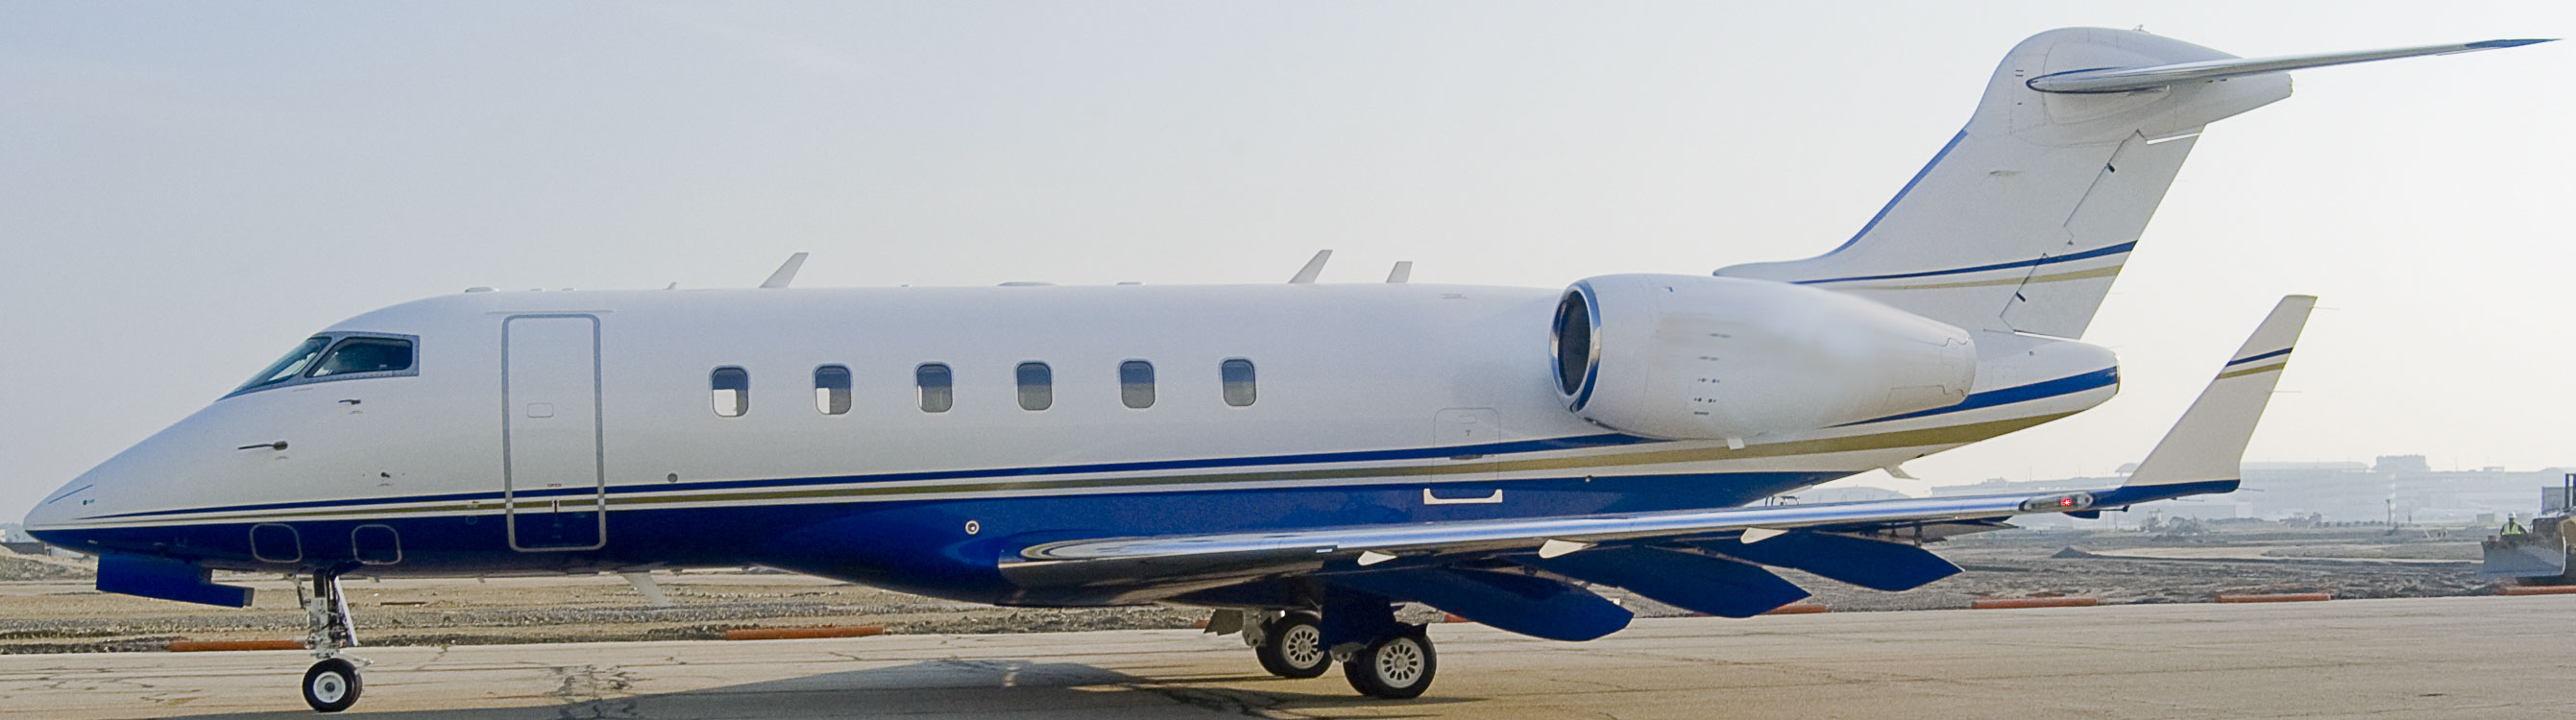 JSA Fleet Expands JSA Added A Bombardier Challenger 300 Private Jet That Tra